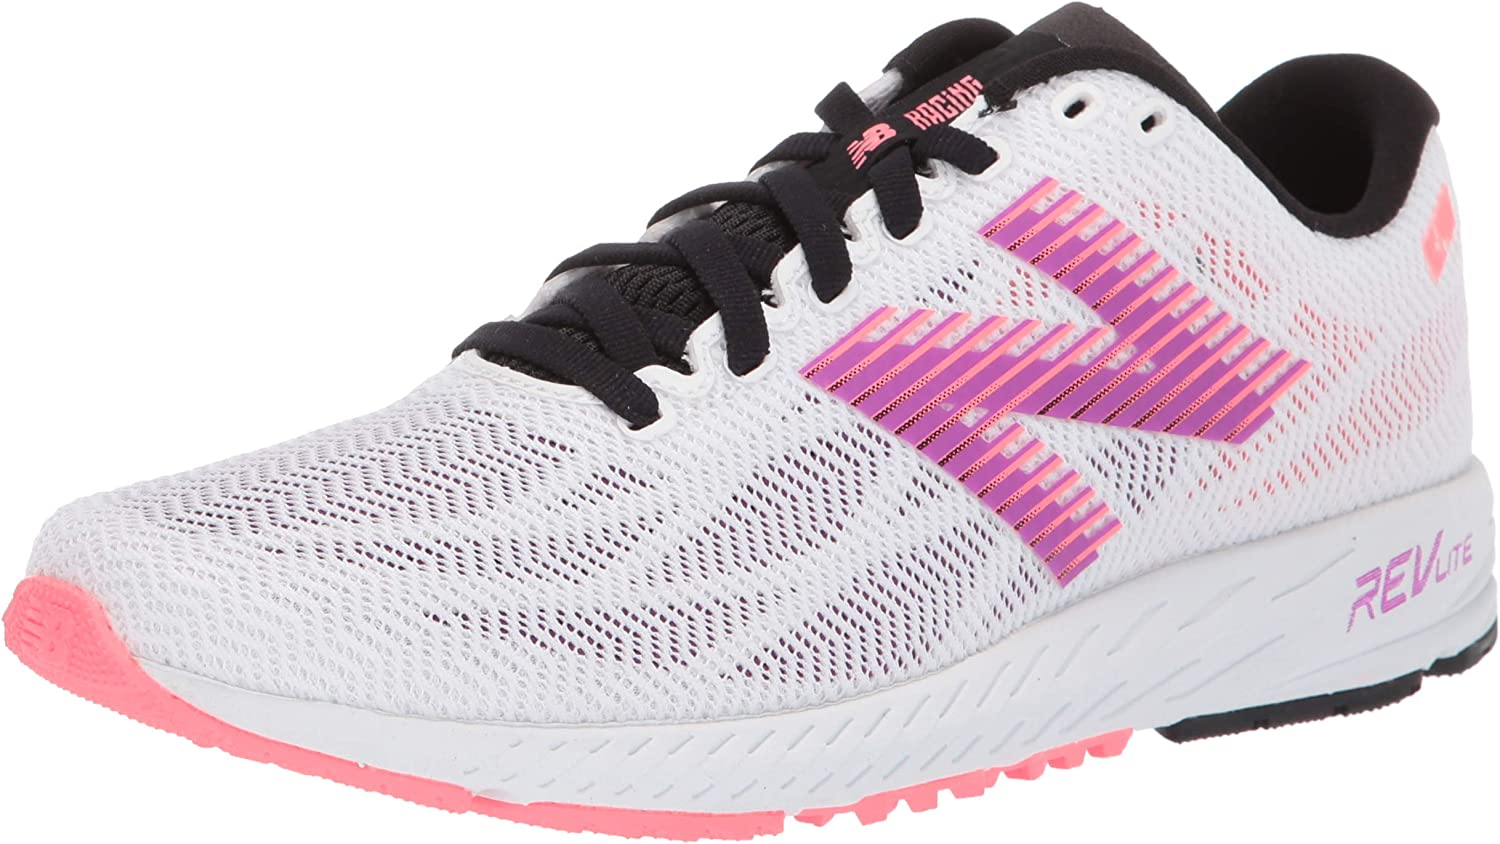 New Balance Women s 1400v6 Running Shoe